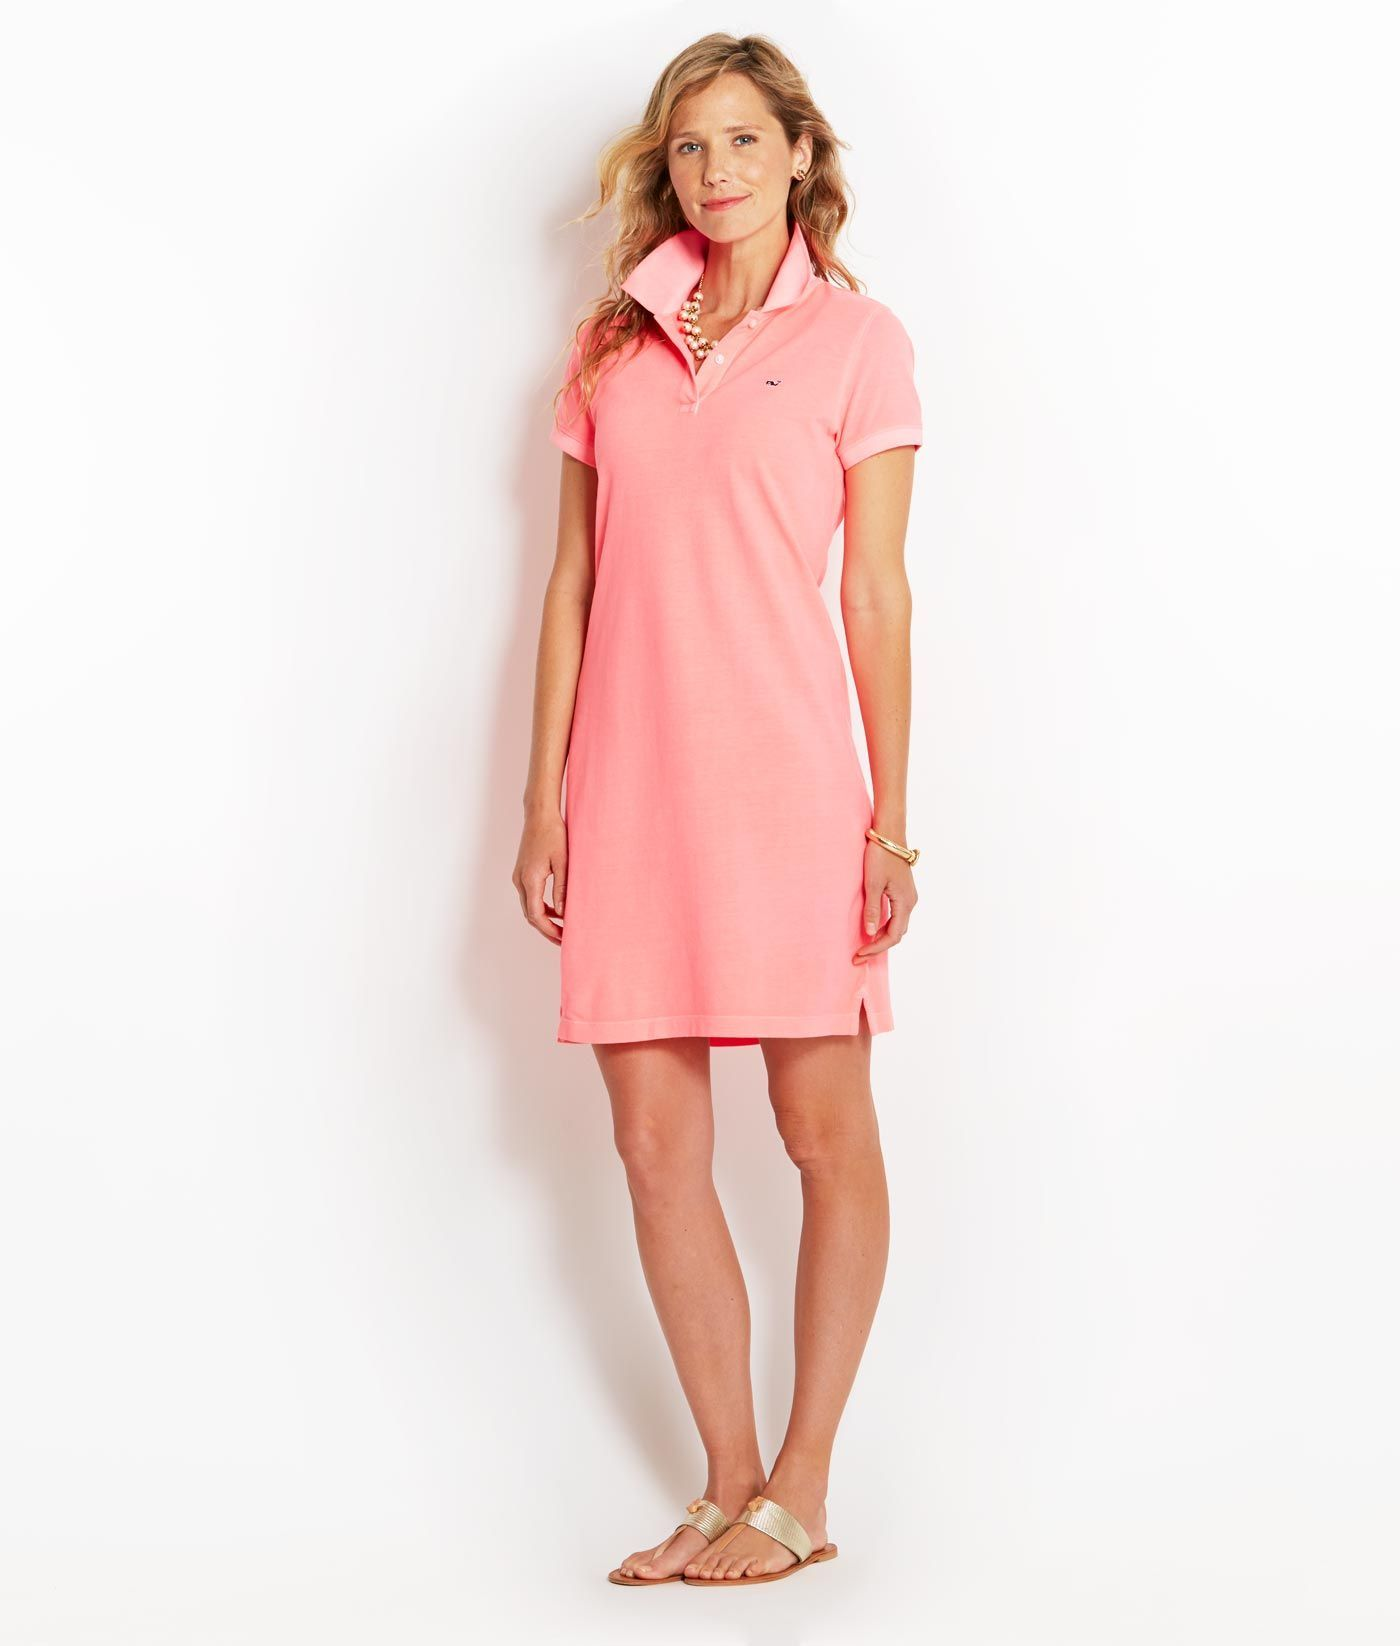 Women\'s Dresses: Buy Neon Garment-Dyed Classic Polo Dress for Women ...